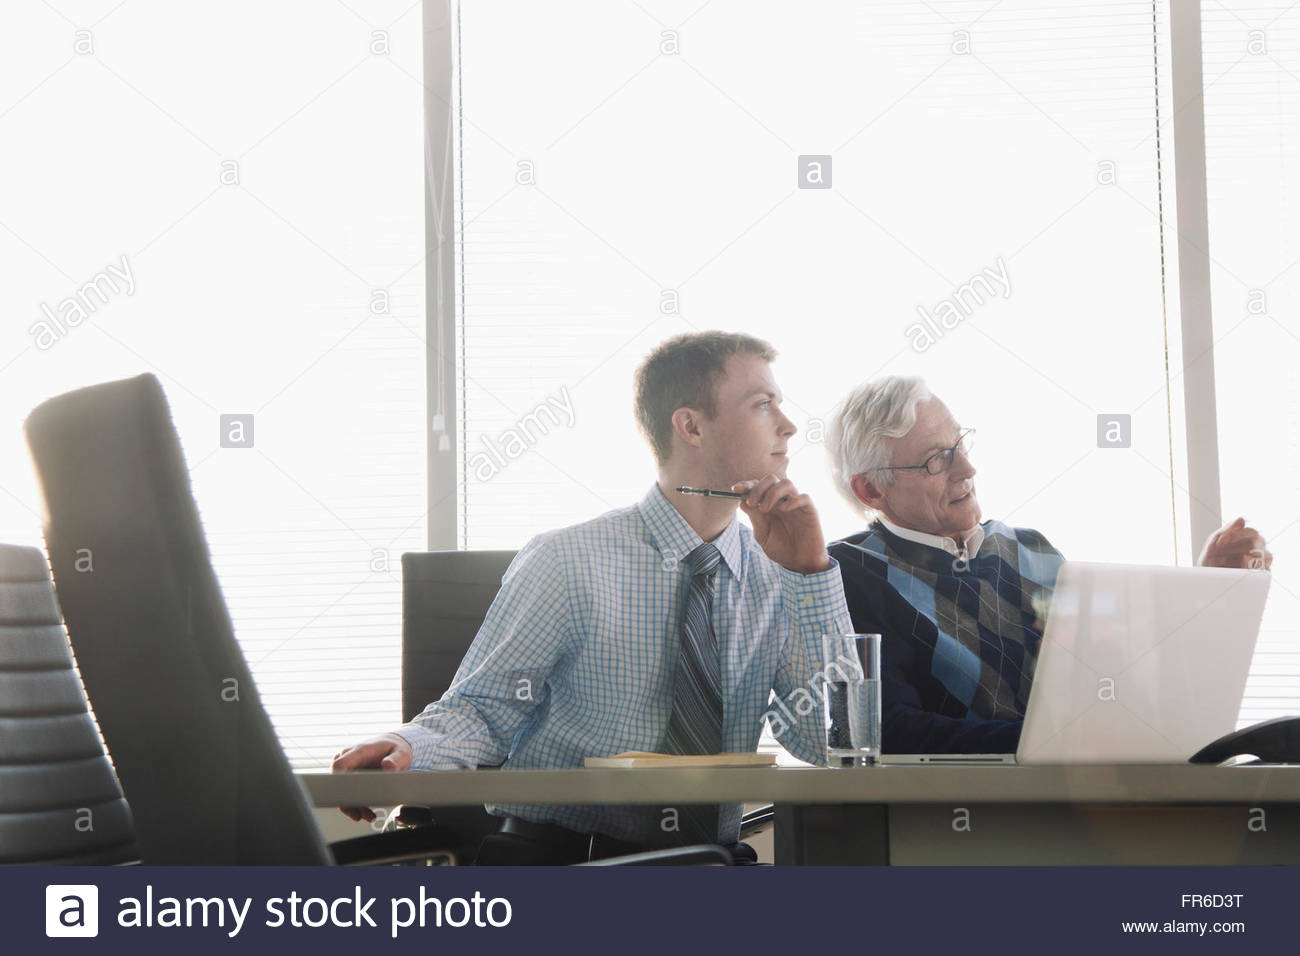 coworkers planning - Stock Image